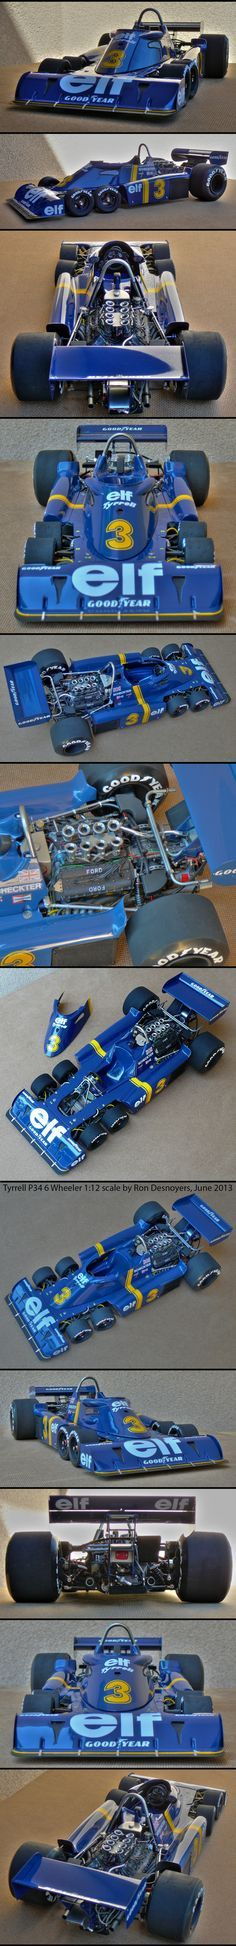 Tyrrell P34 6 Wheeler 1:12 Scale Tamiya model by *Autographix on deviantART